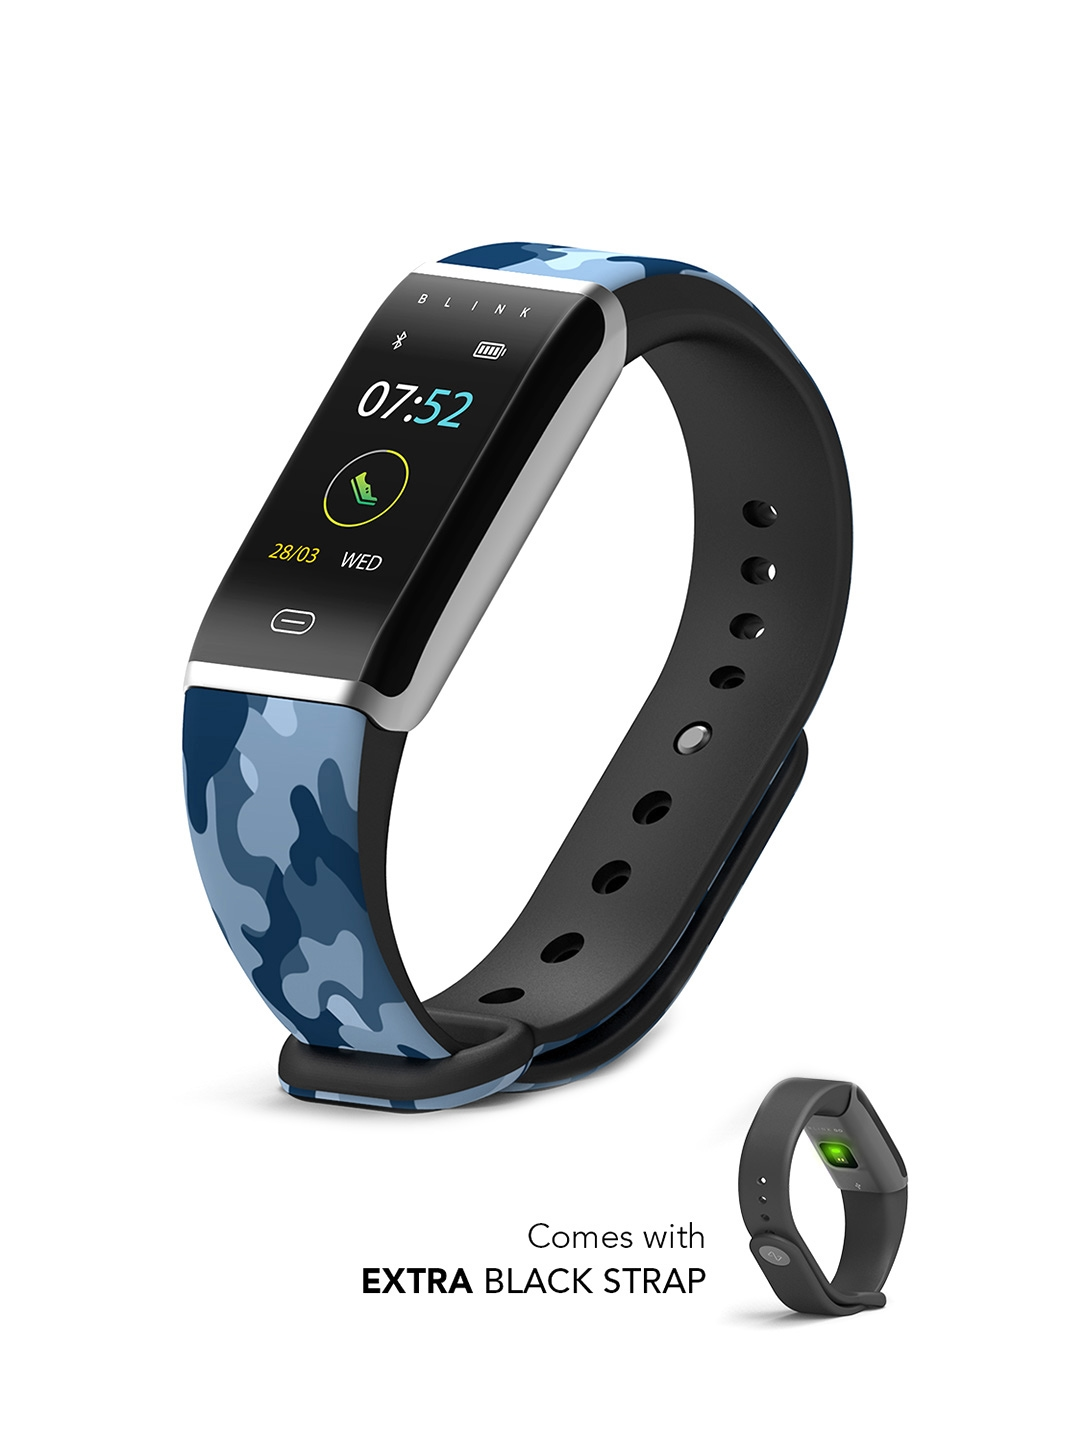 Blink GO   Aqua Silver  extra Black Strap  Fitness Wearable Band